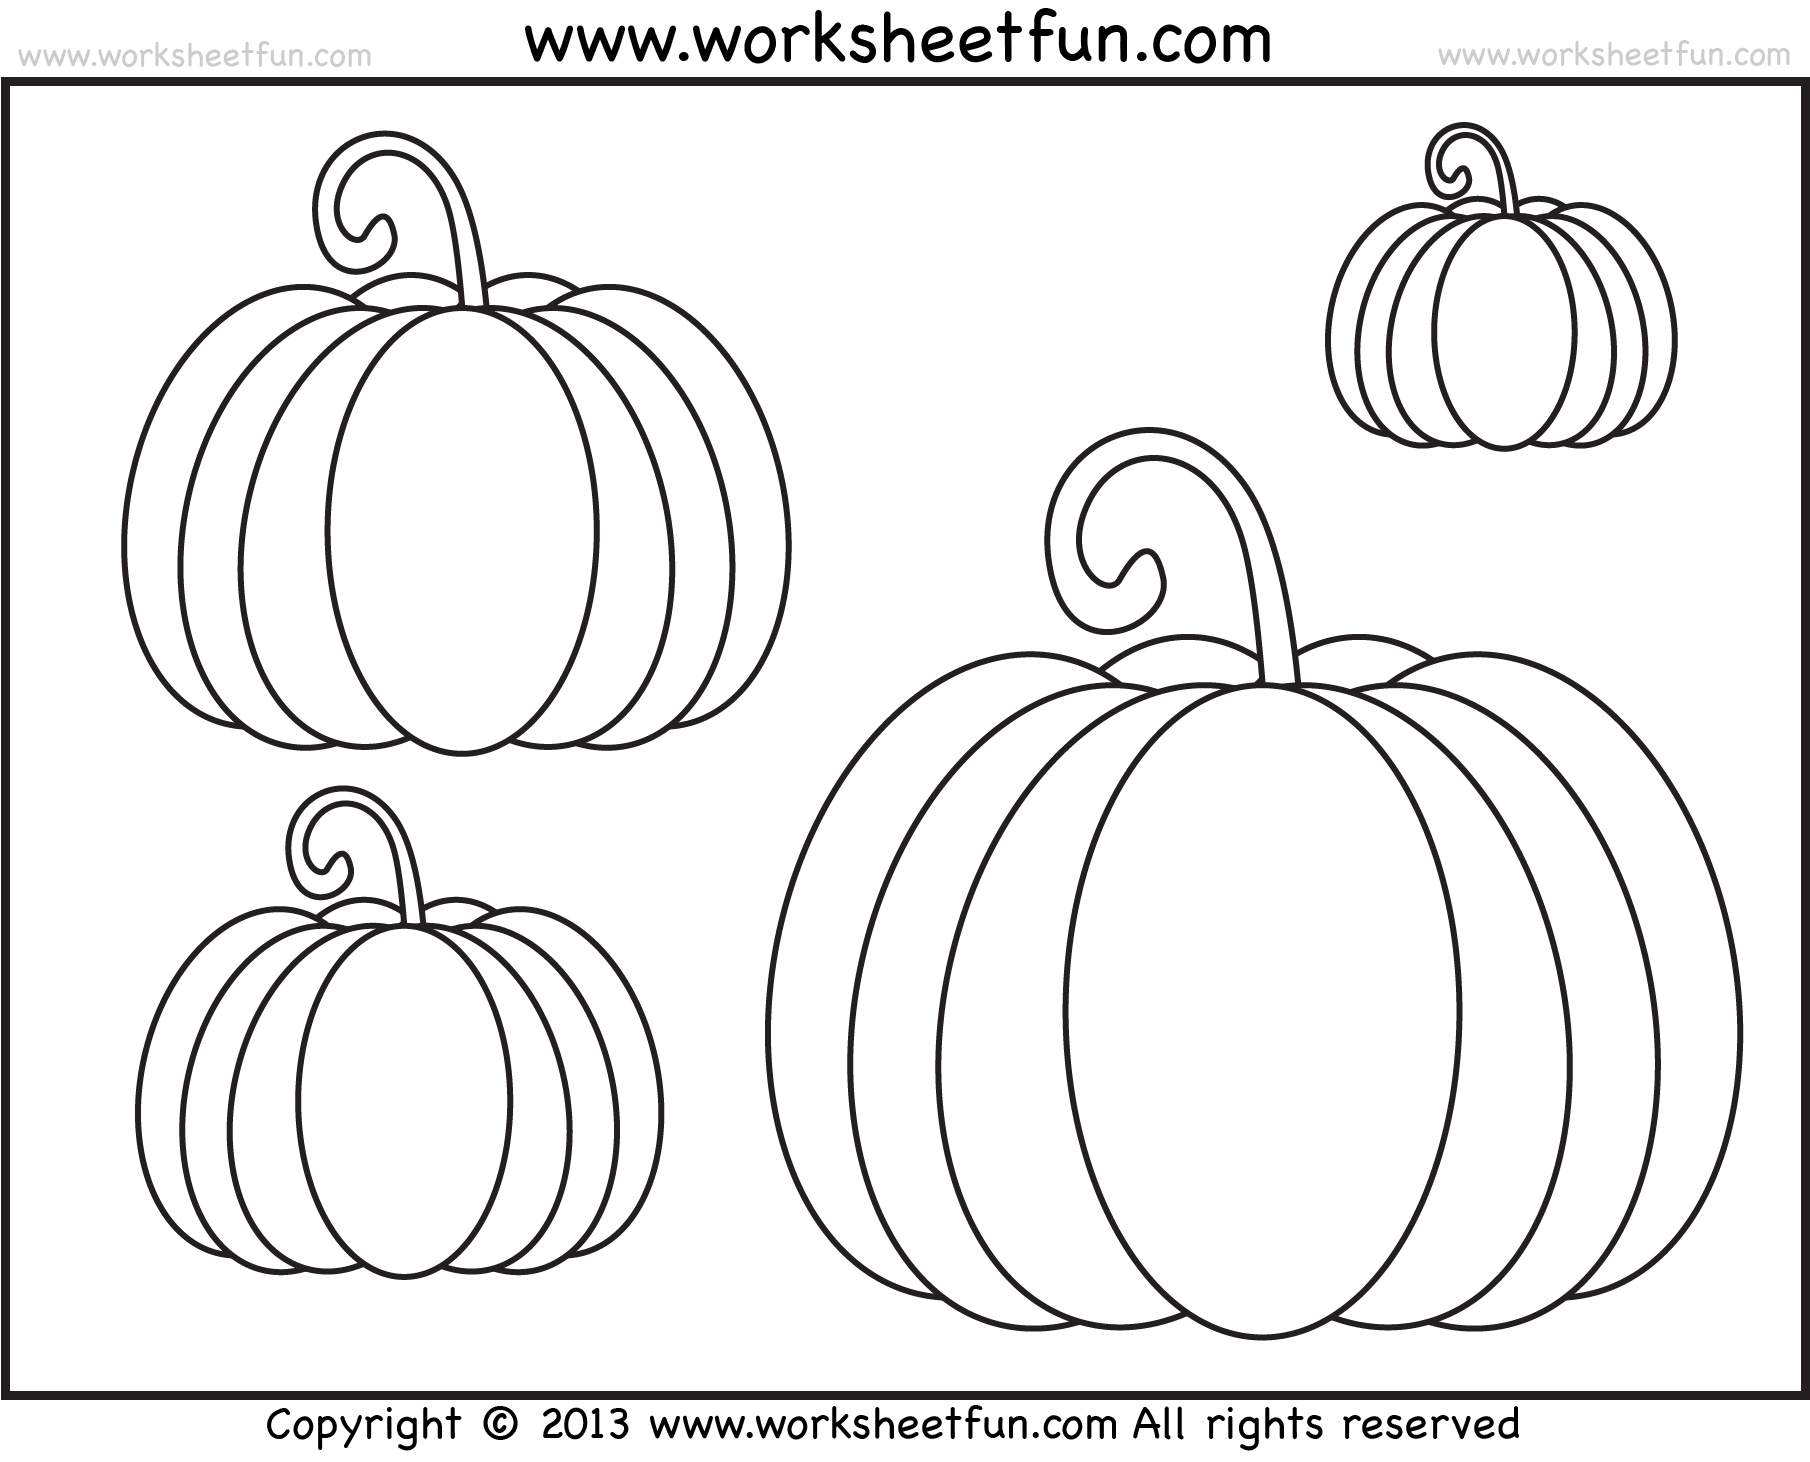 Pumpkin Coloring 3 Worksheets Free Printable Worksheets Worksheetfun